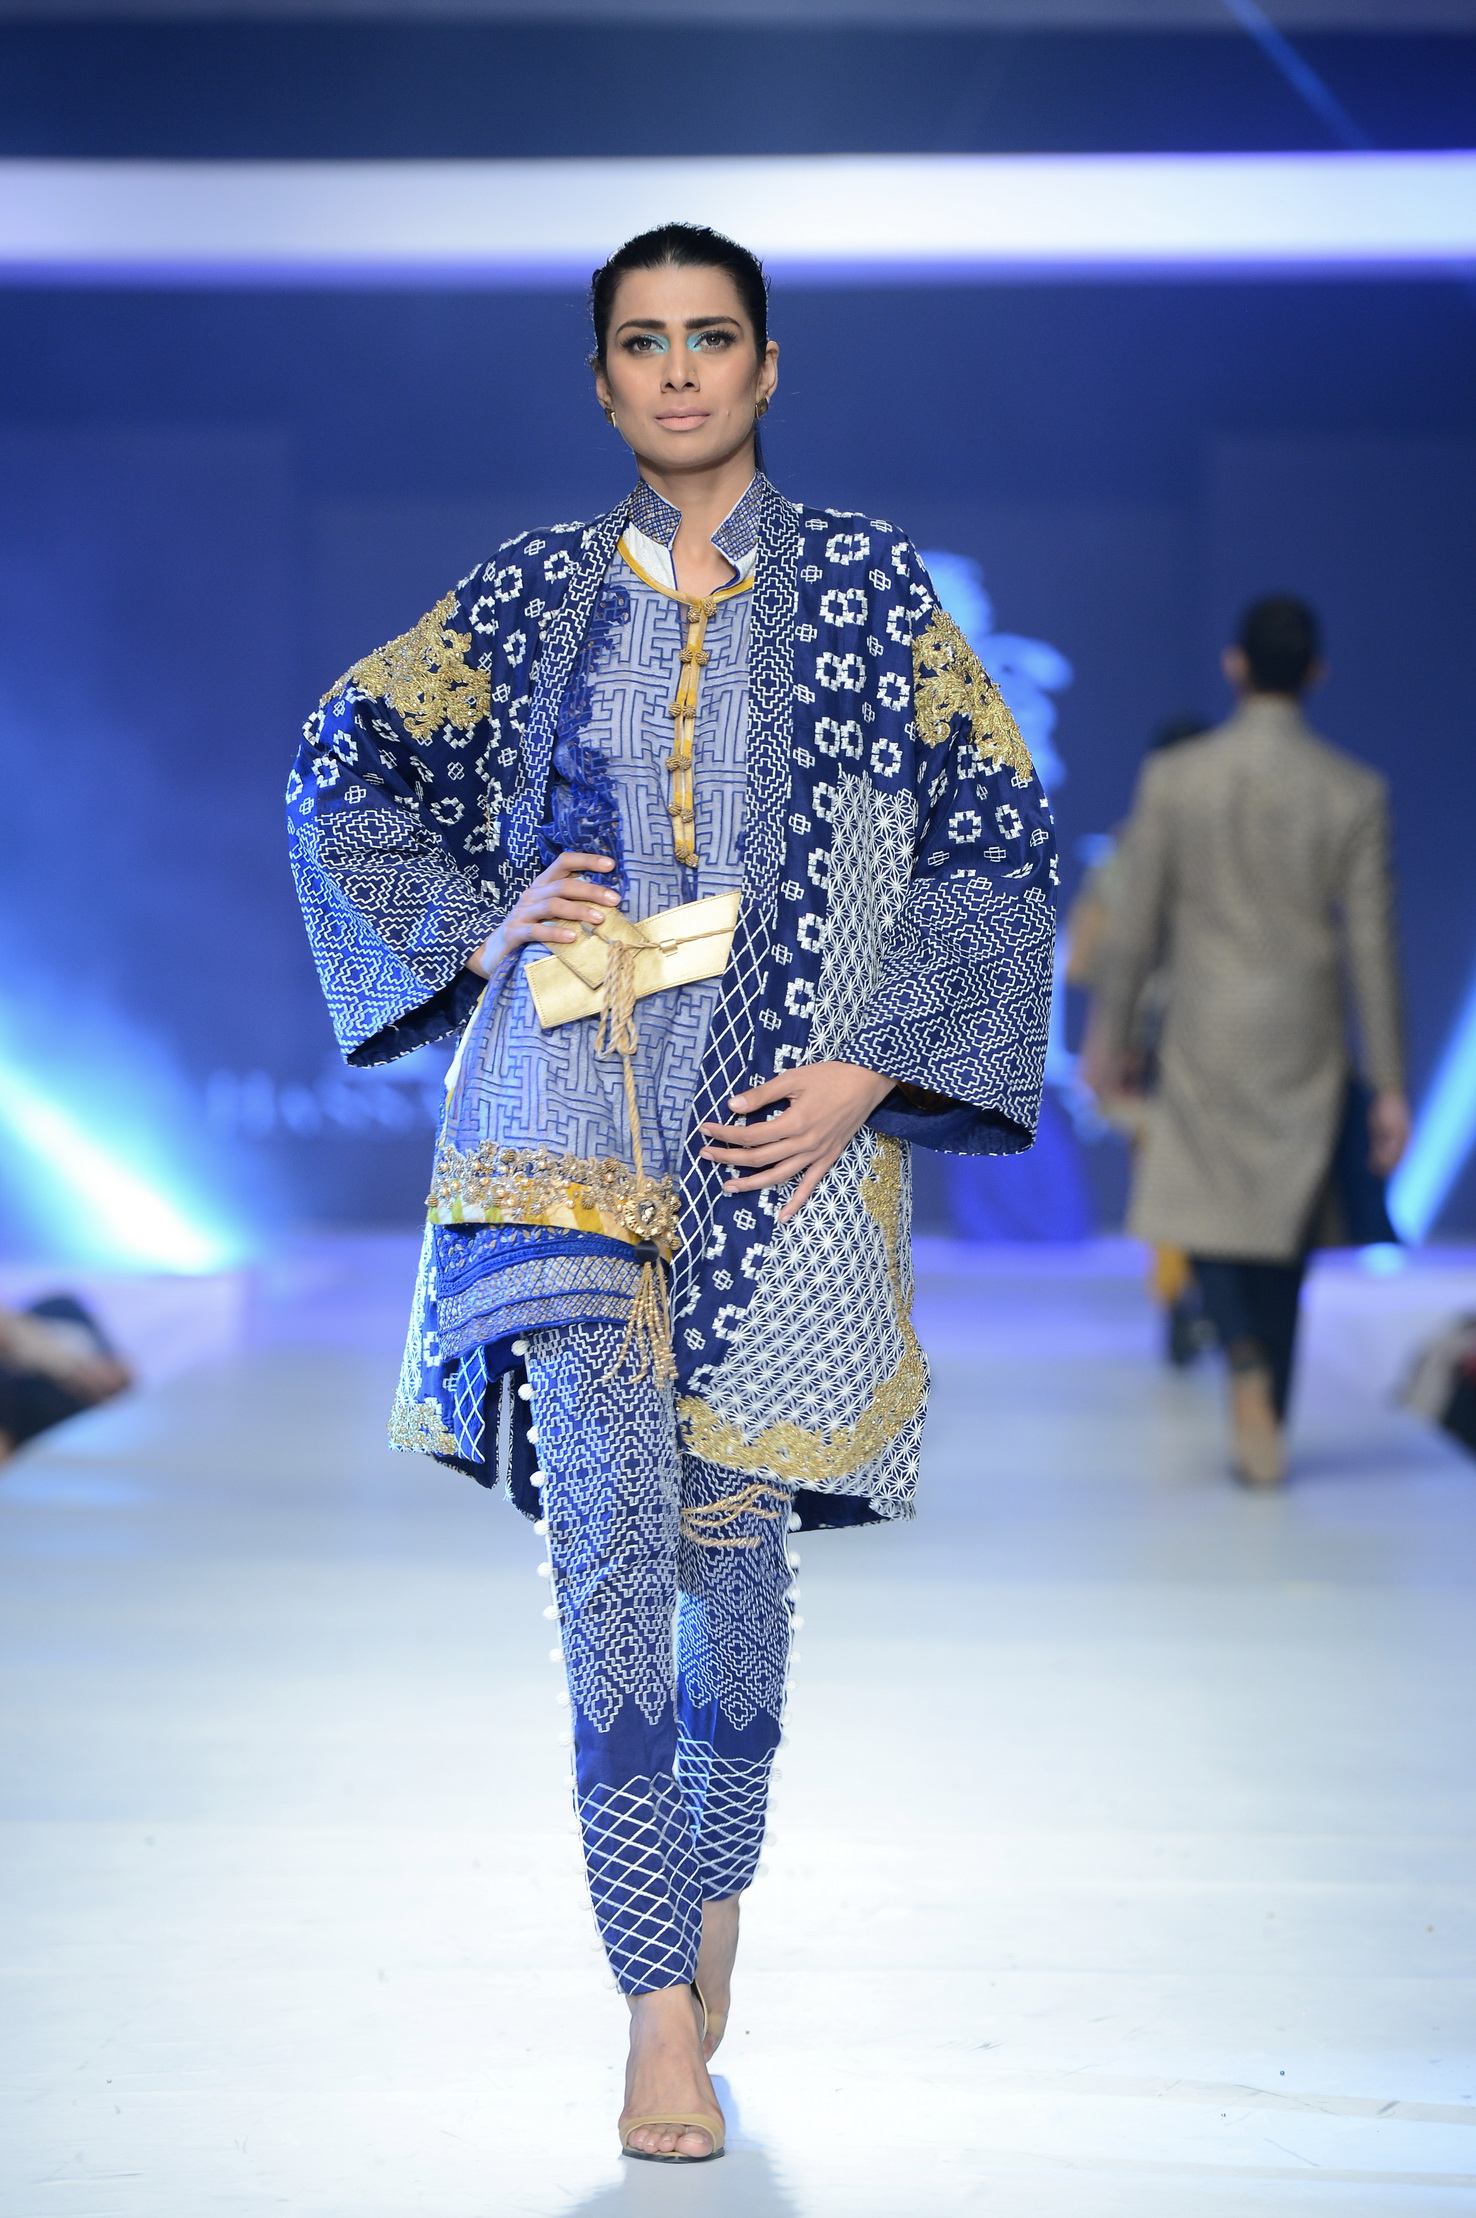 HSY - Photography by Faisal Farooqui and his team at Dragonfly